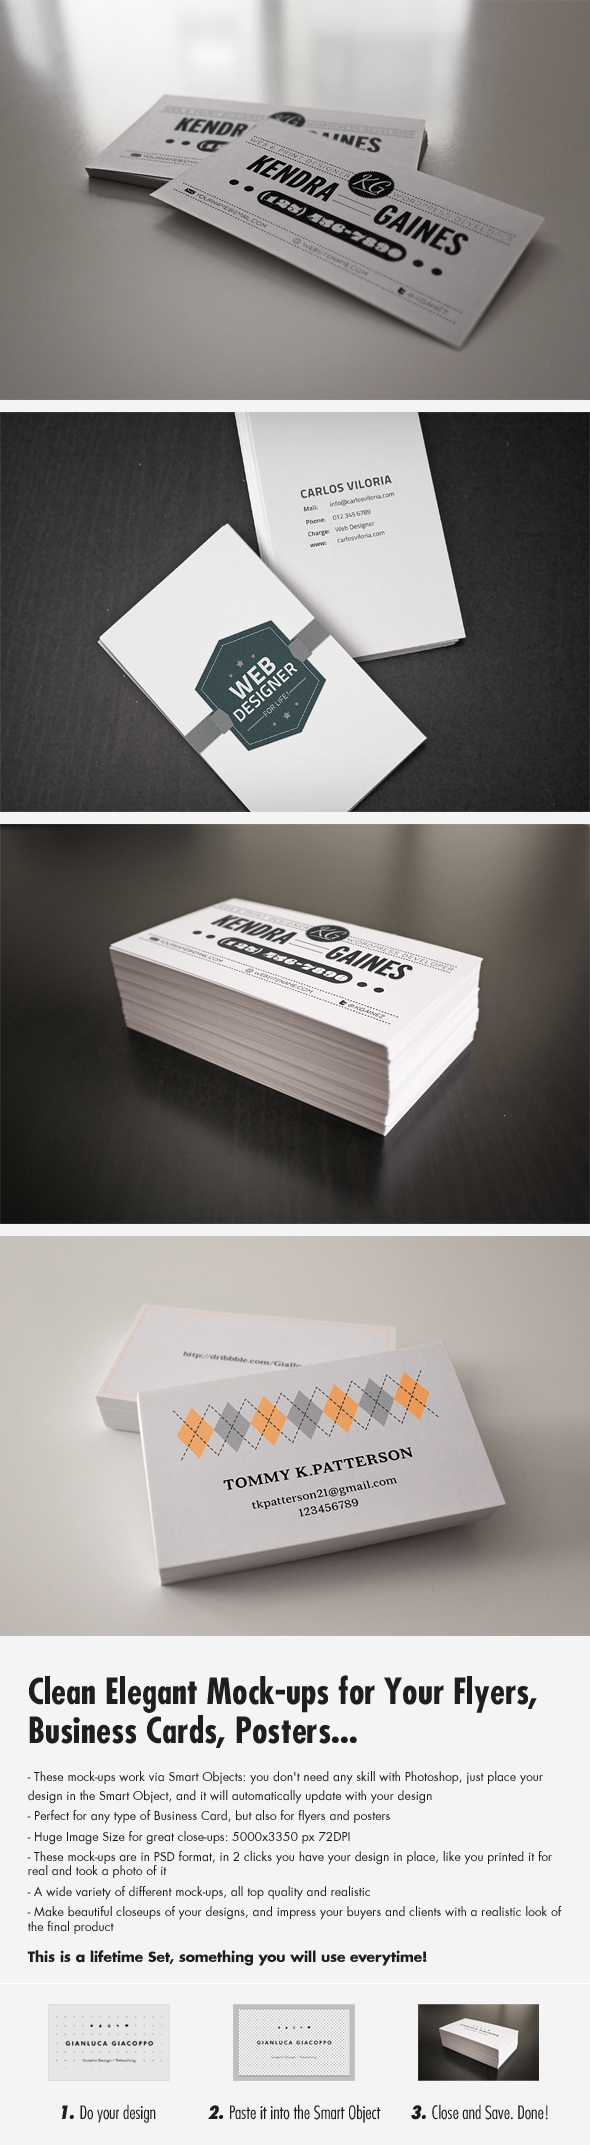 Flyer/Business Card Clean Realistic Mockups Set 1 by Giallo86